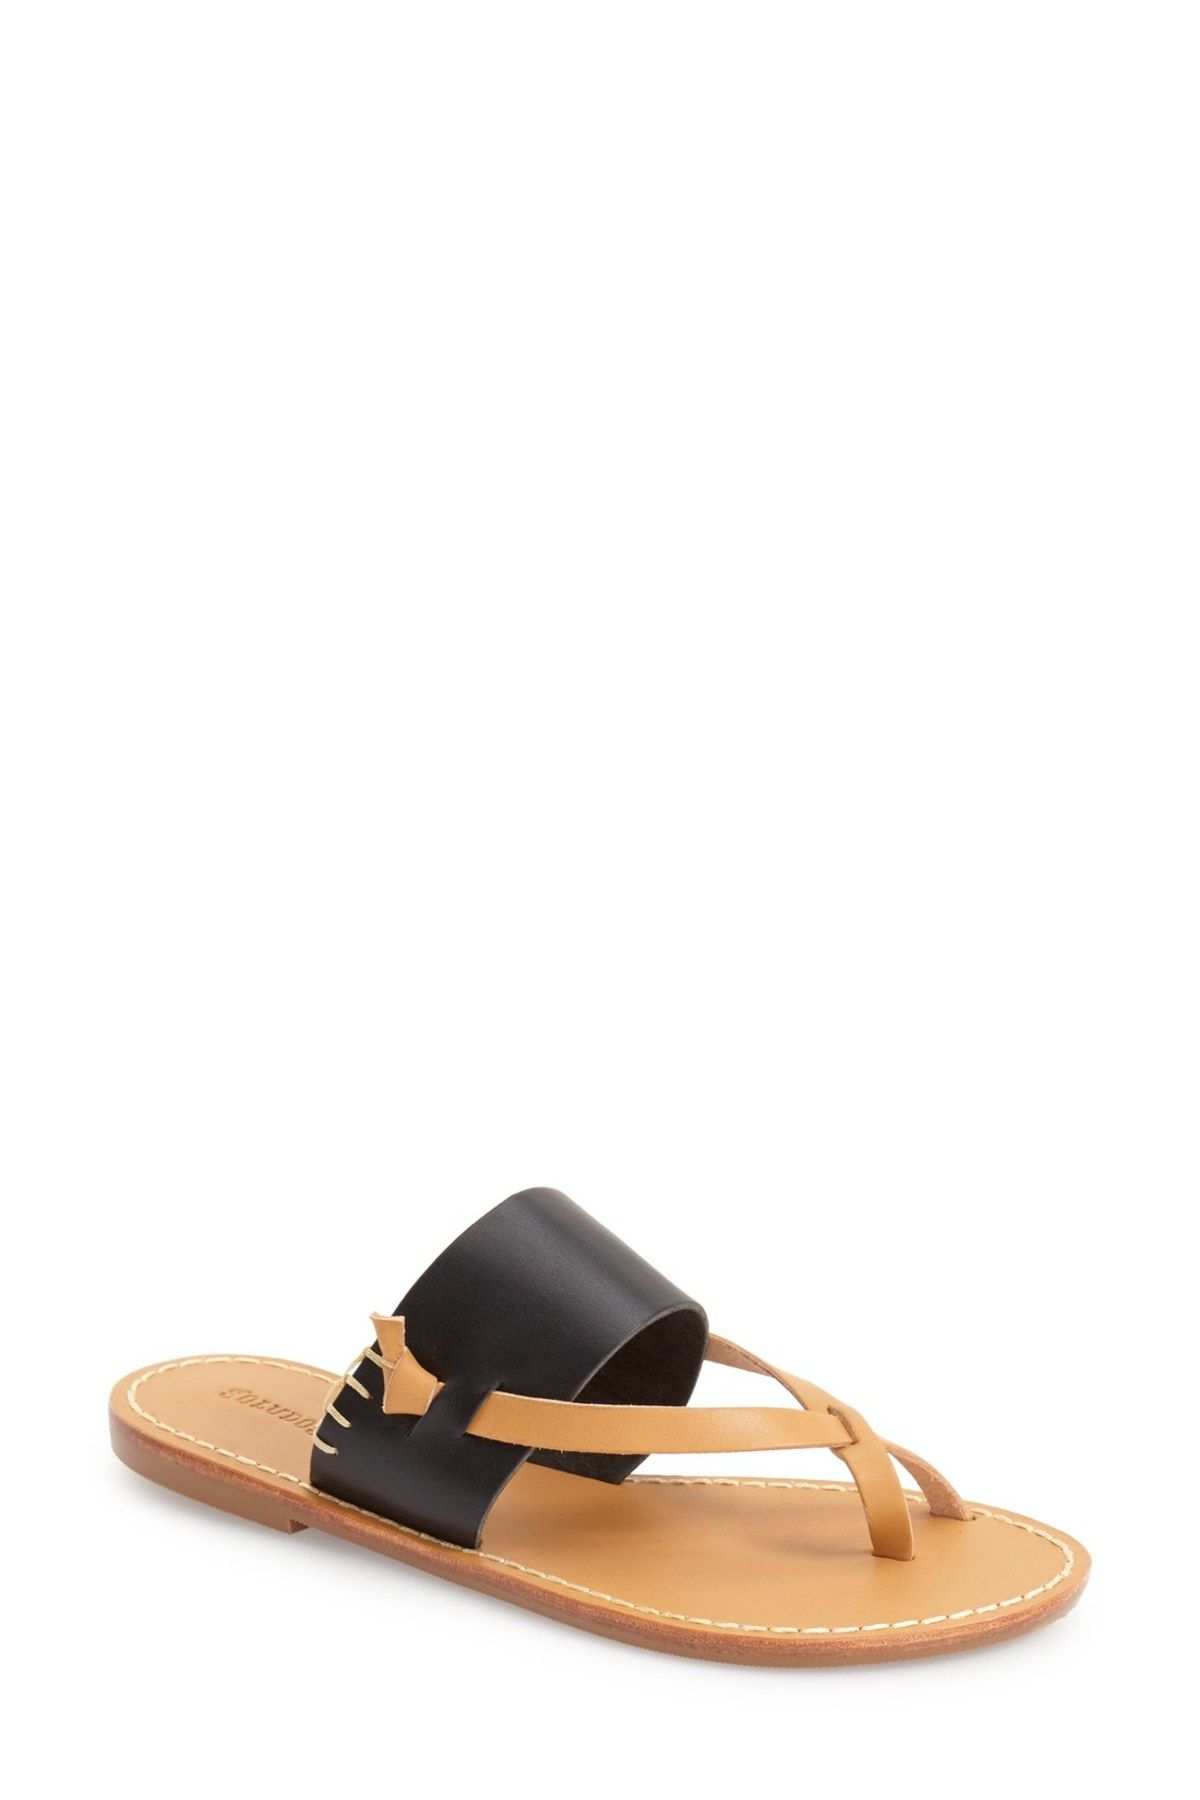 dbd23386442d Slotted Thong Sandal by Soludos on  nordstrom rack